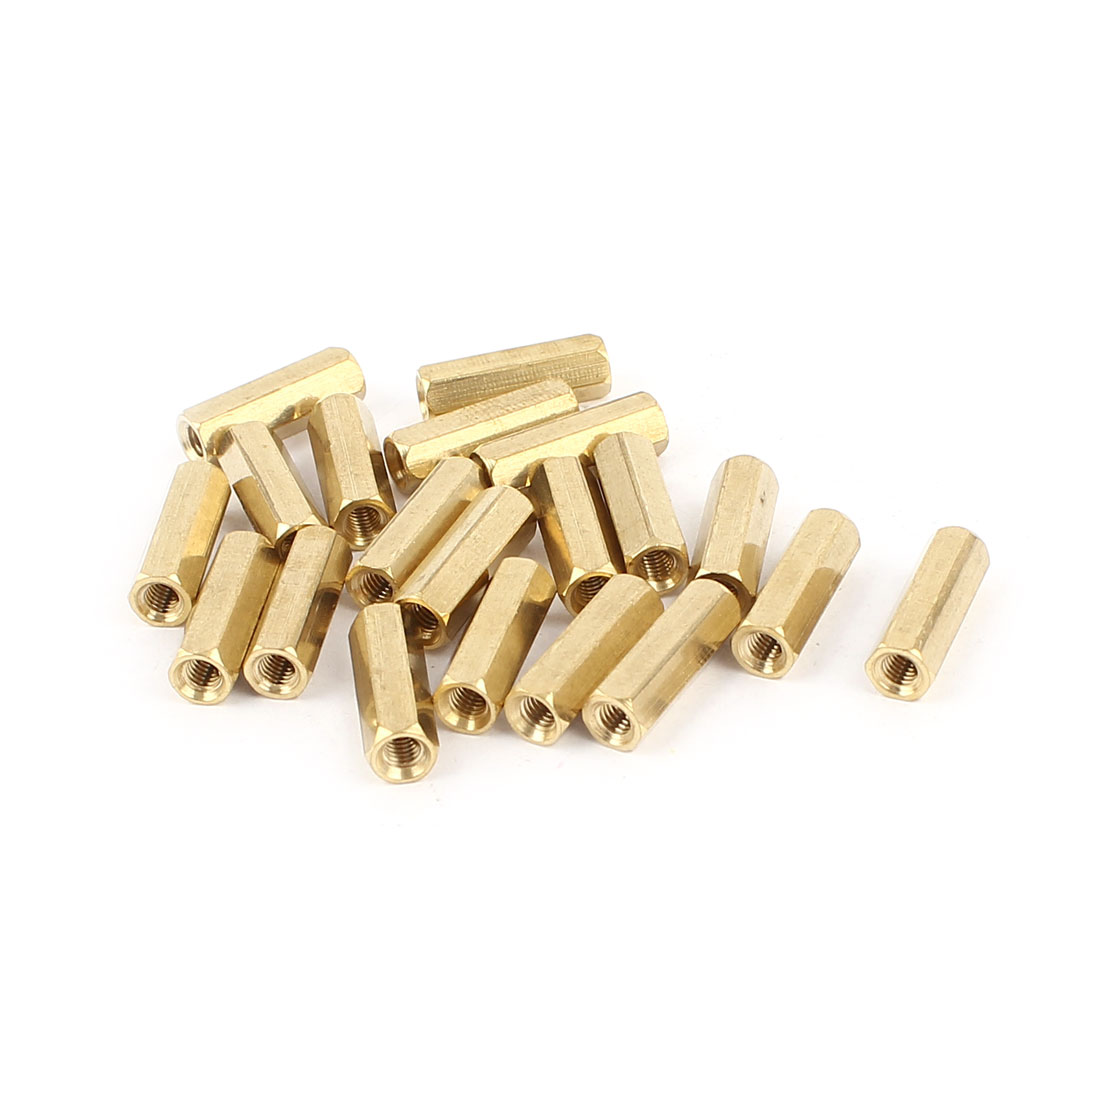 20 Pieces M3 Female Thread Brass Pillar Standoff Spacer 15mm 0.6""